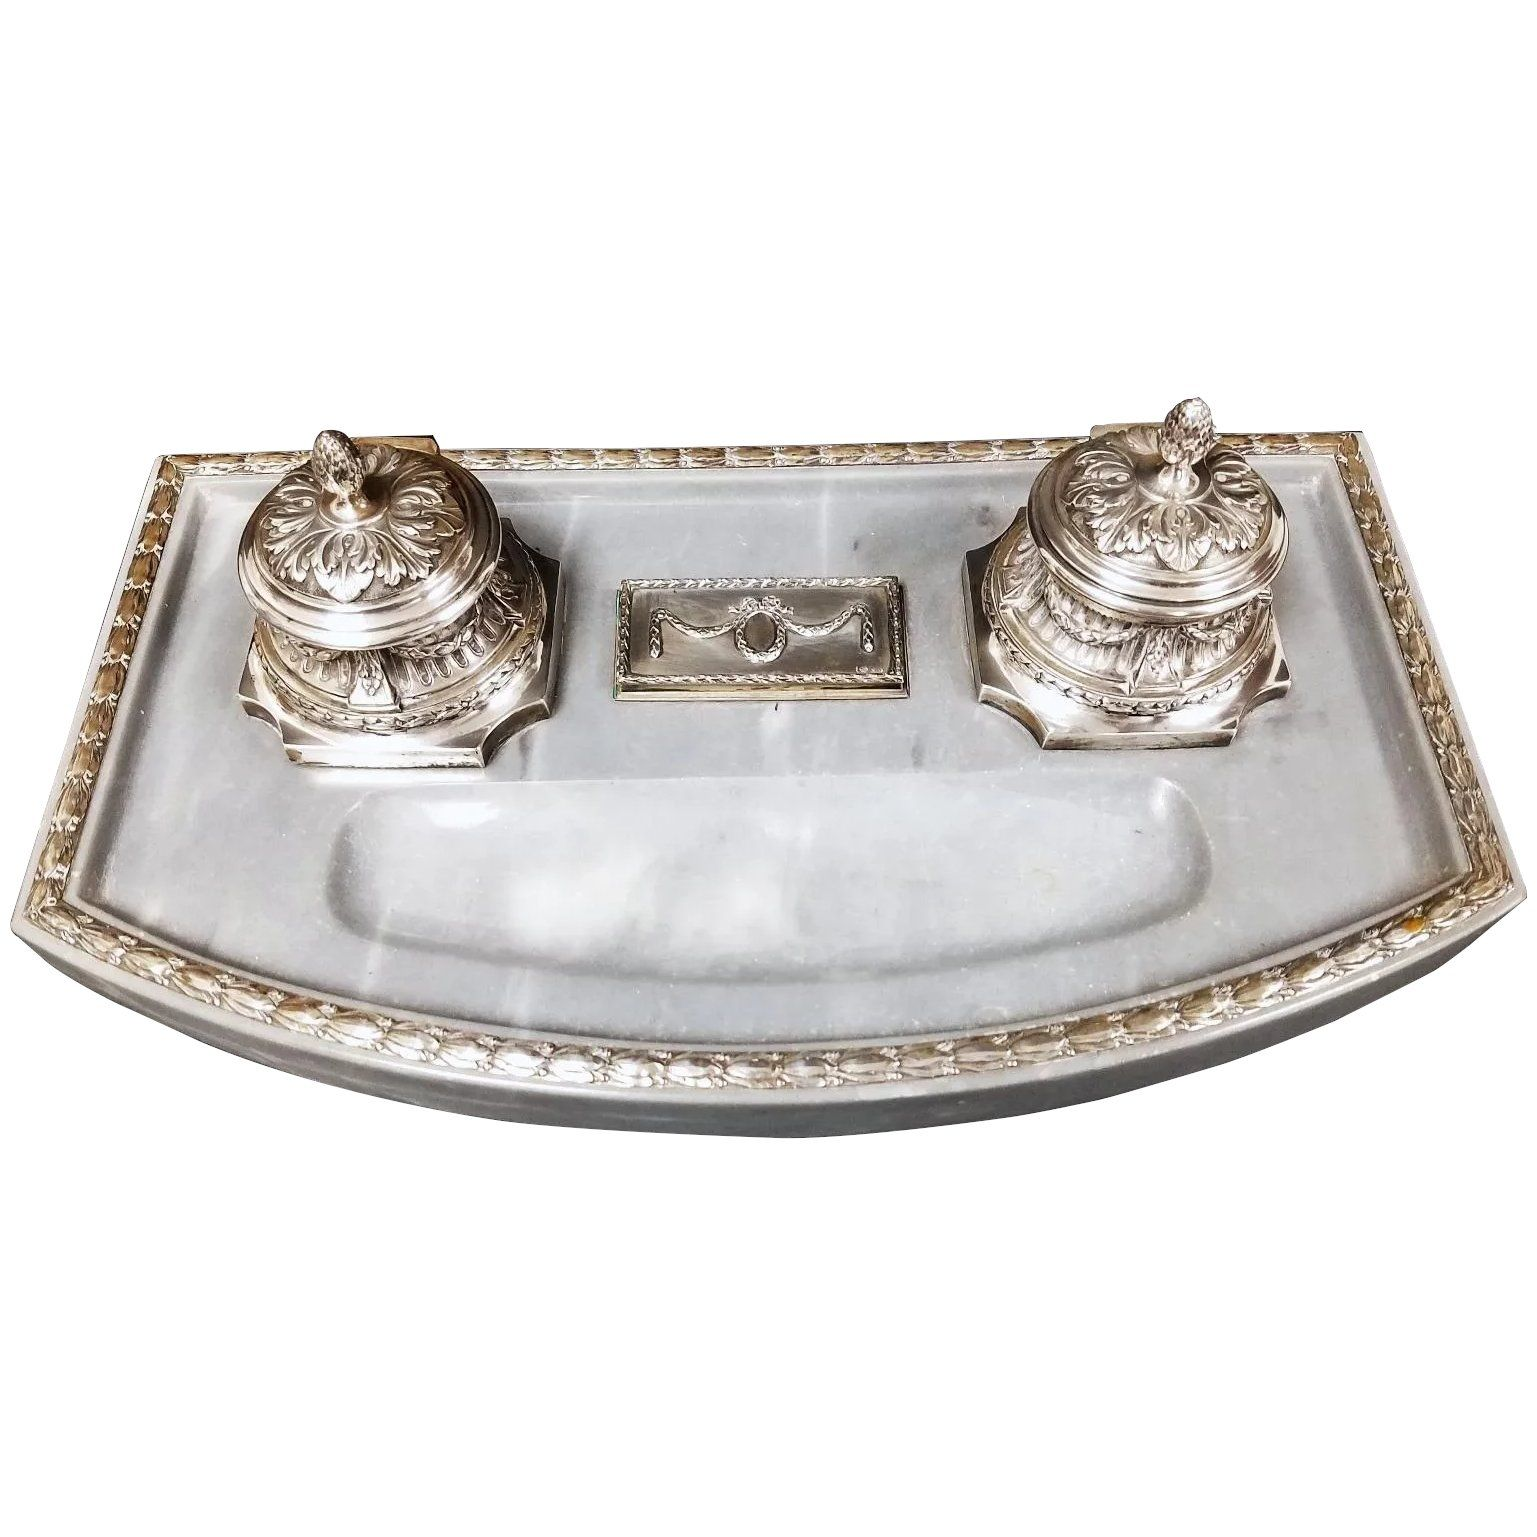 Finest Quality 800 Silver German Marble Desk Set With Inkwells In 2020 Marble Desk Desk Set Silver